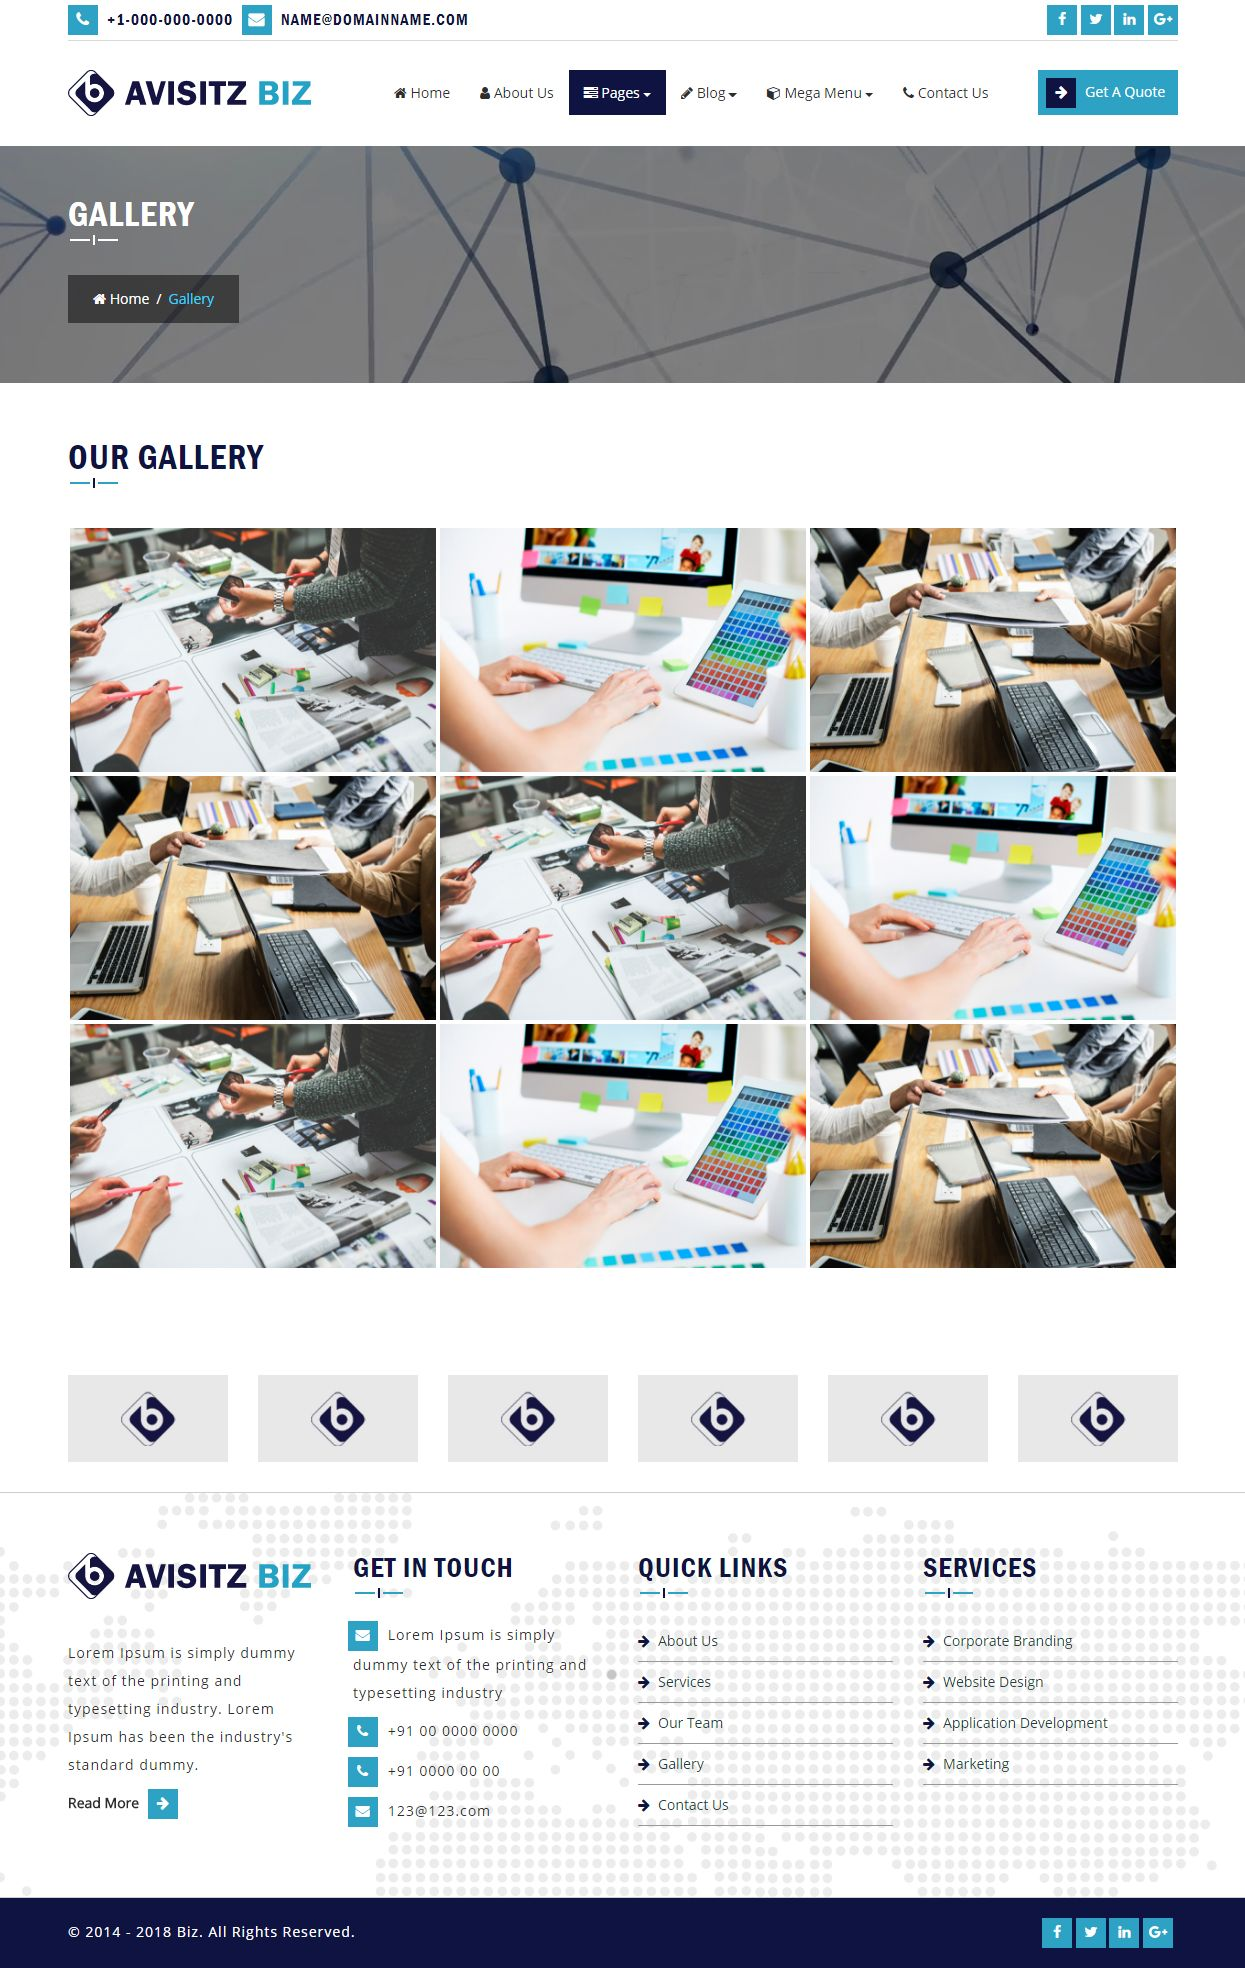 Avisitz Biz - Business Technology HTML5 Responsive Screenshot 1